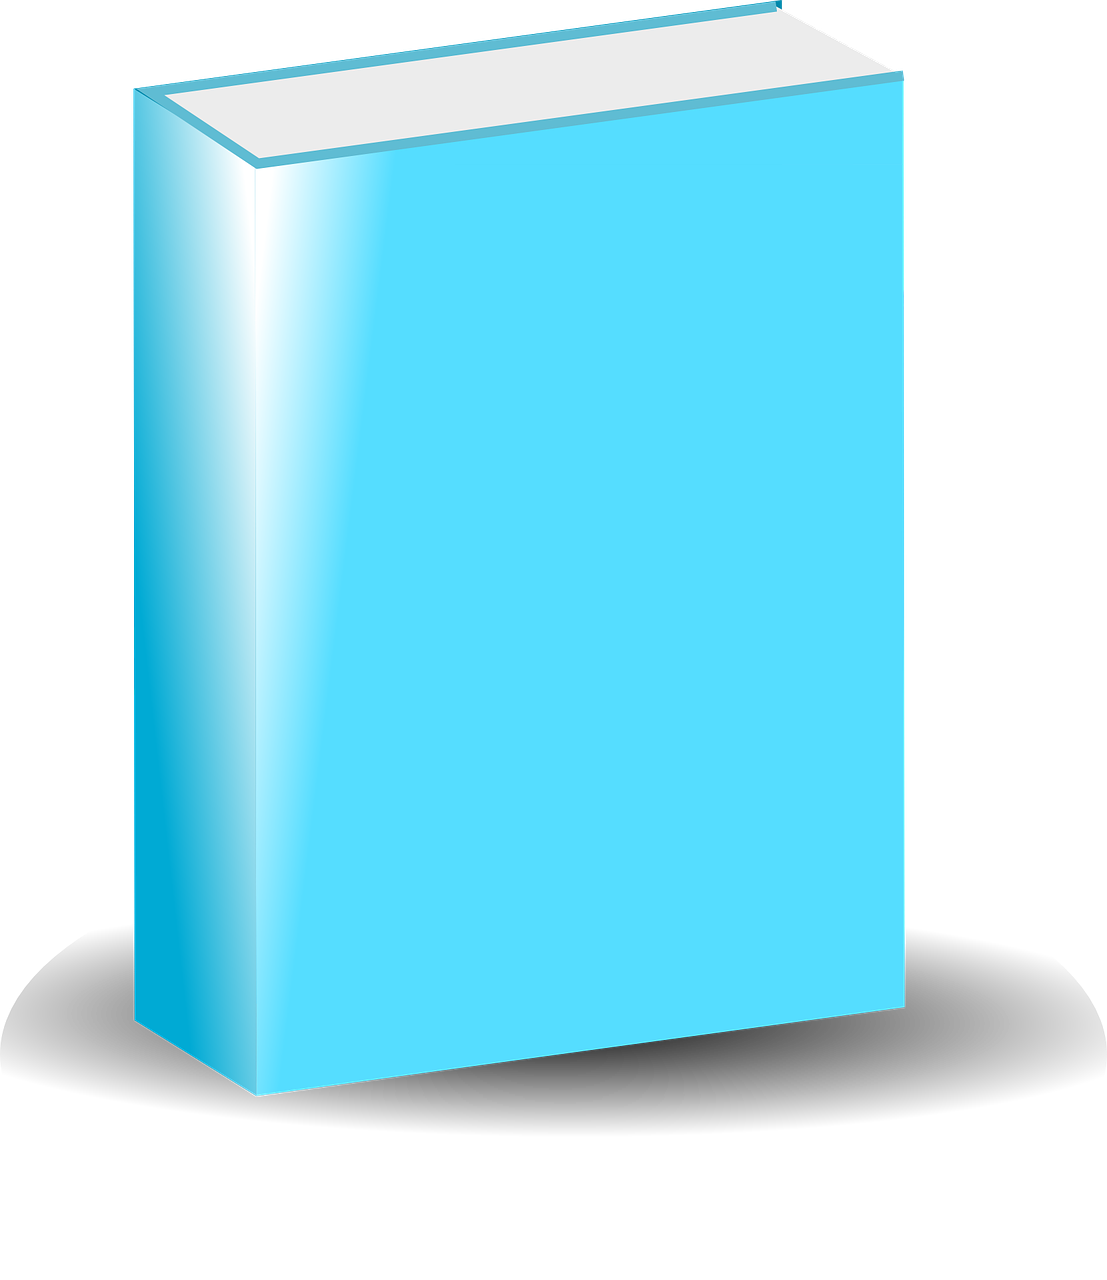 Aqua blank book clipart banner transparent Book Book Cover Cover Blank PNG Image - Picpng banner transparent